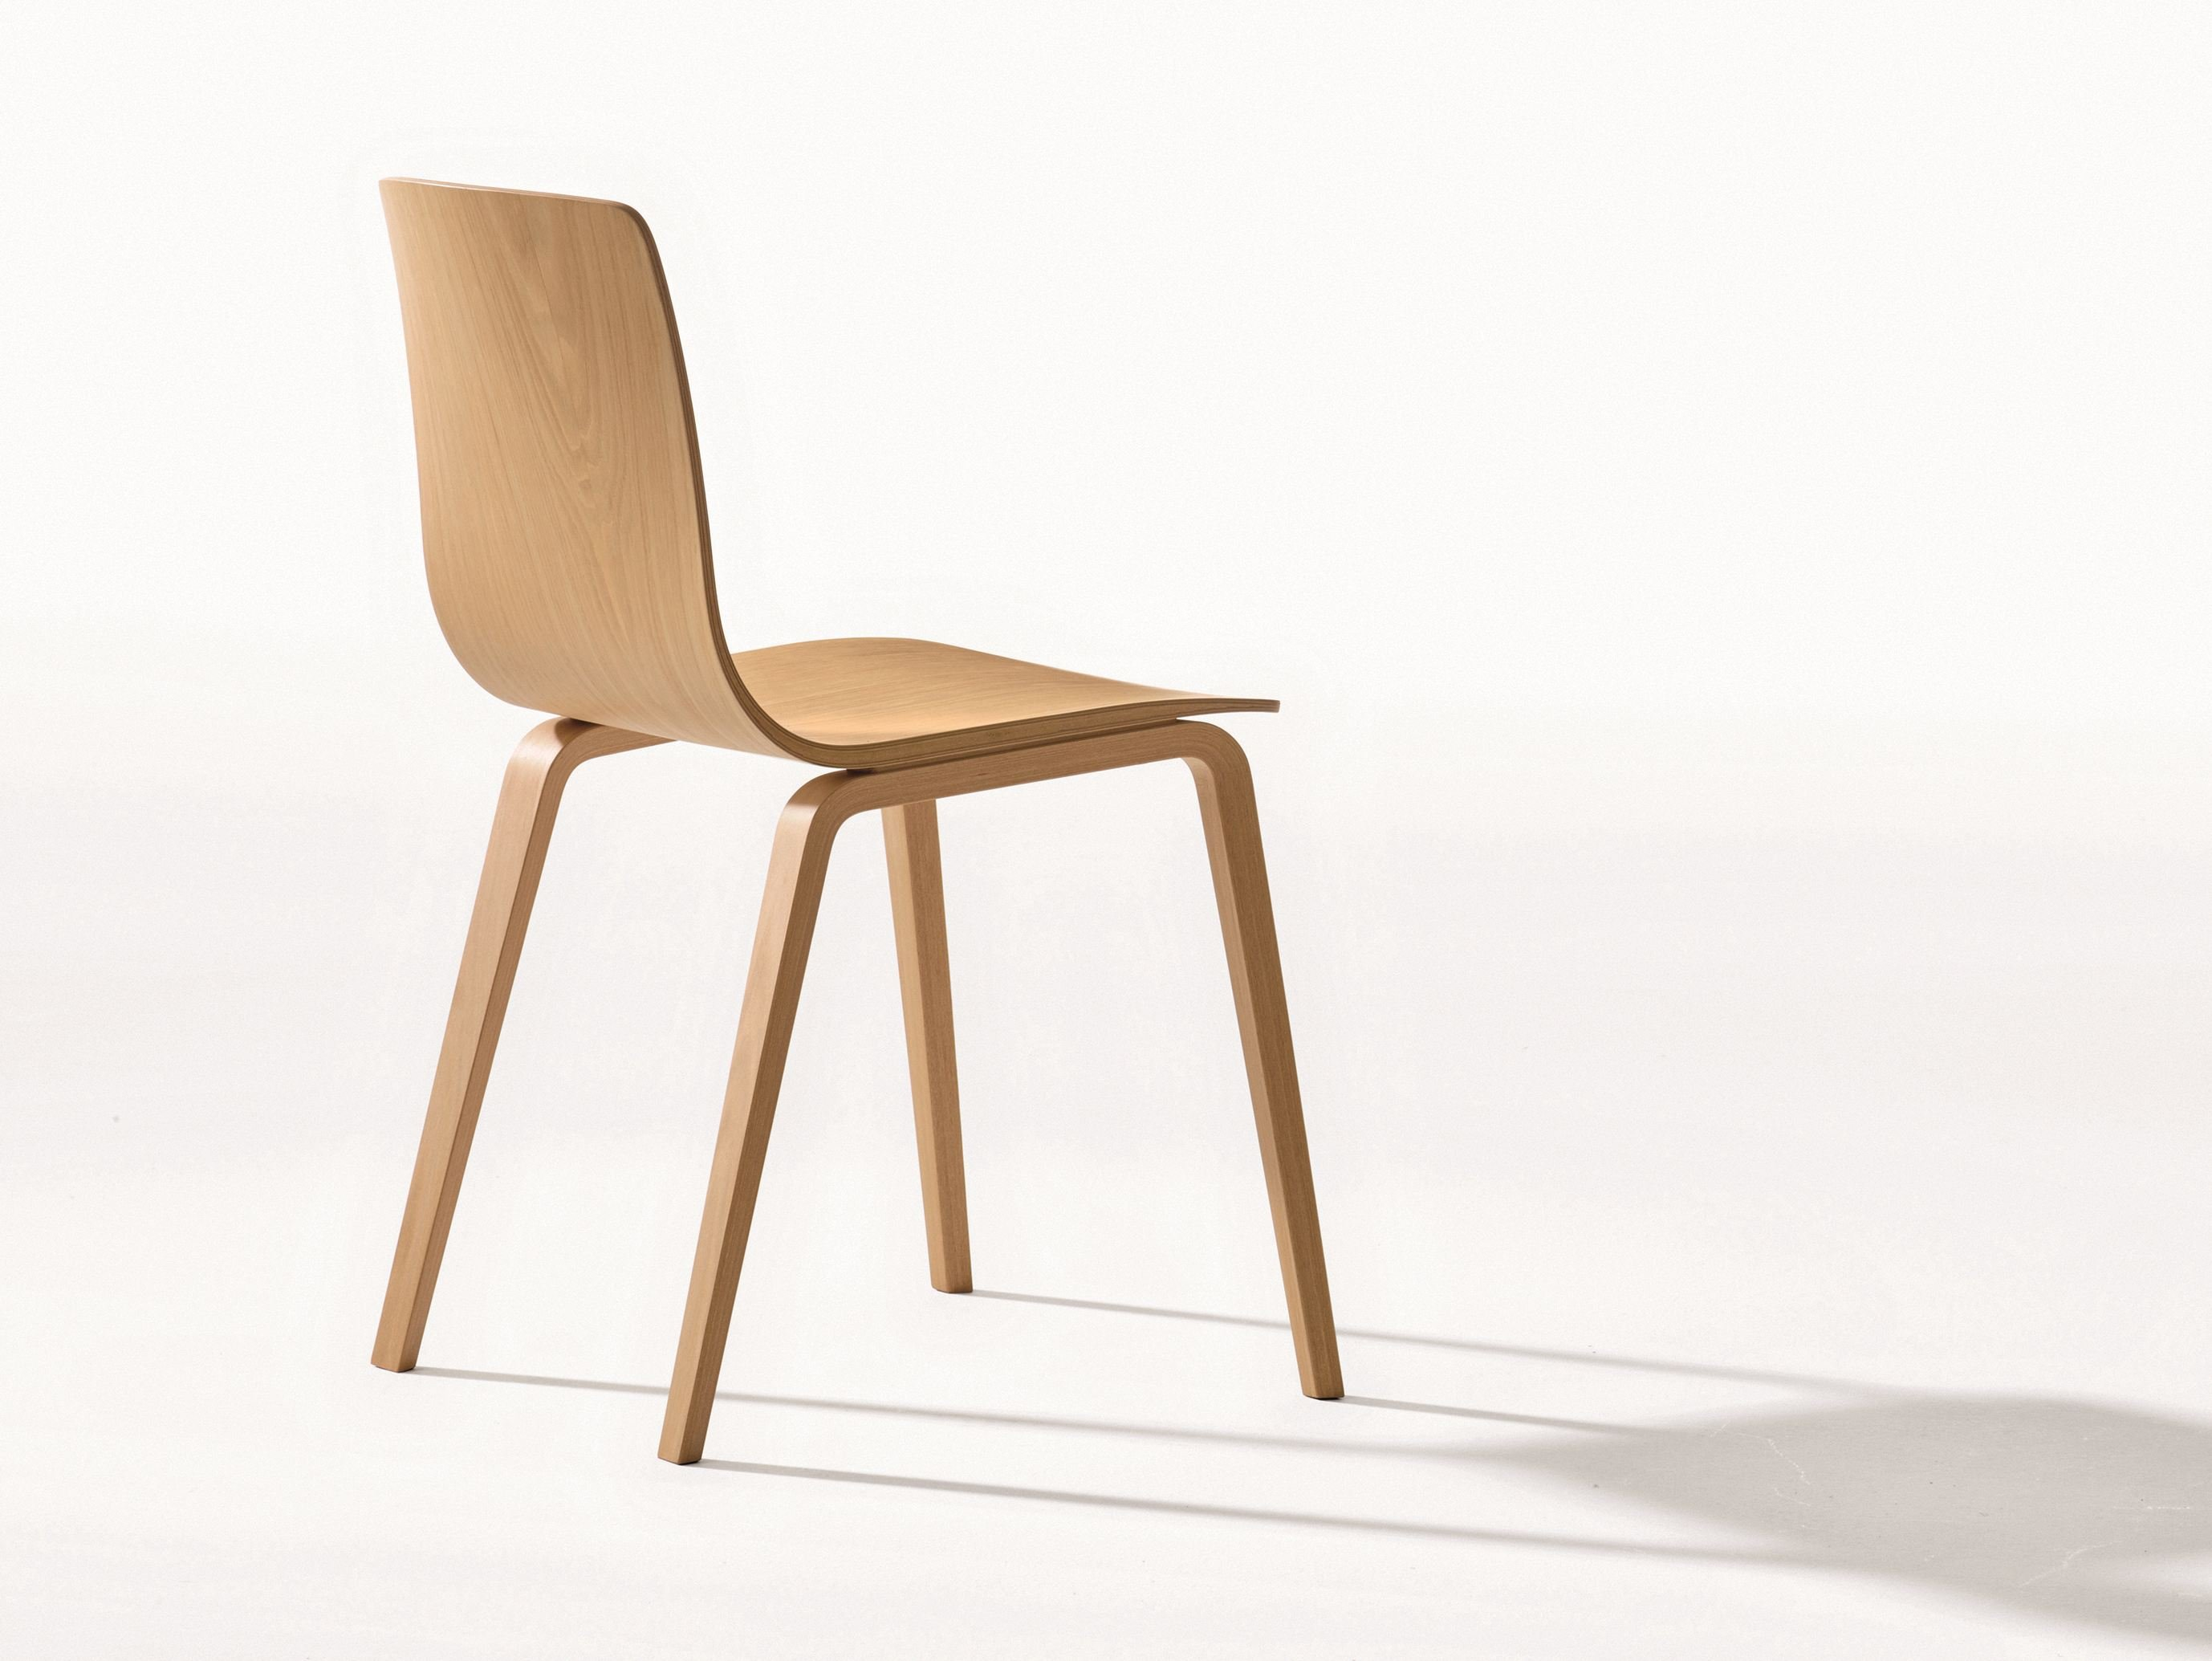 STACKABLE WOODEN CHAIR AAVA COLLECTION BY ARPER DESIGN ANTTI KOTILAINEN # Chaise Design Bois